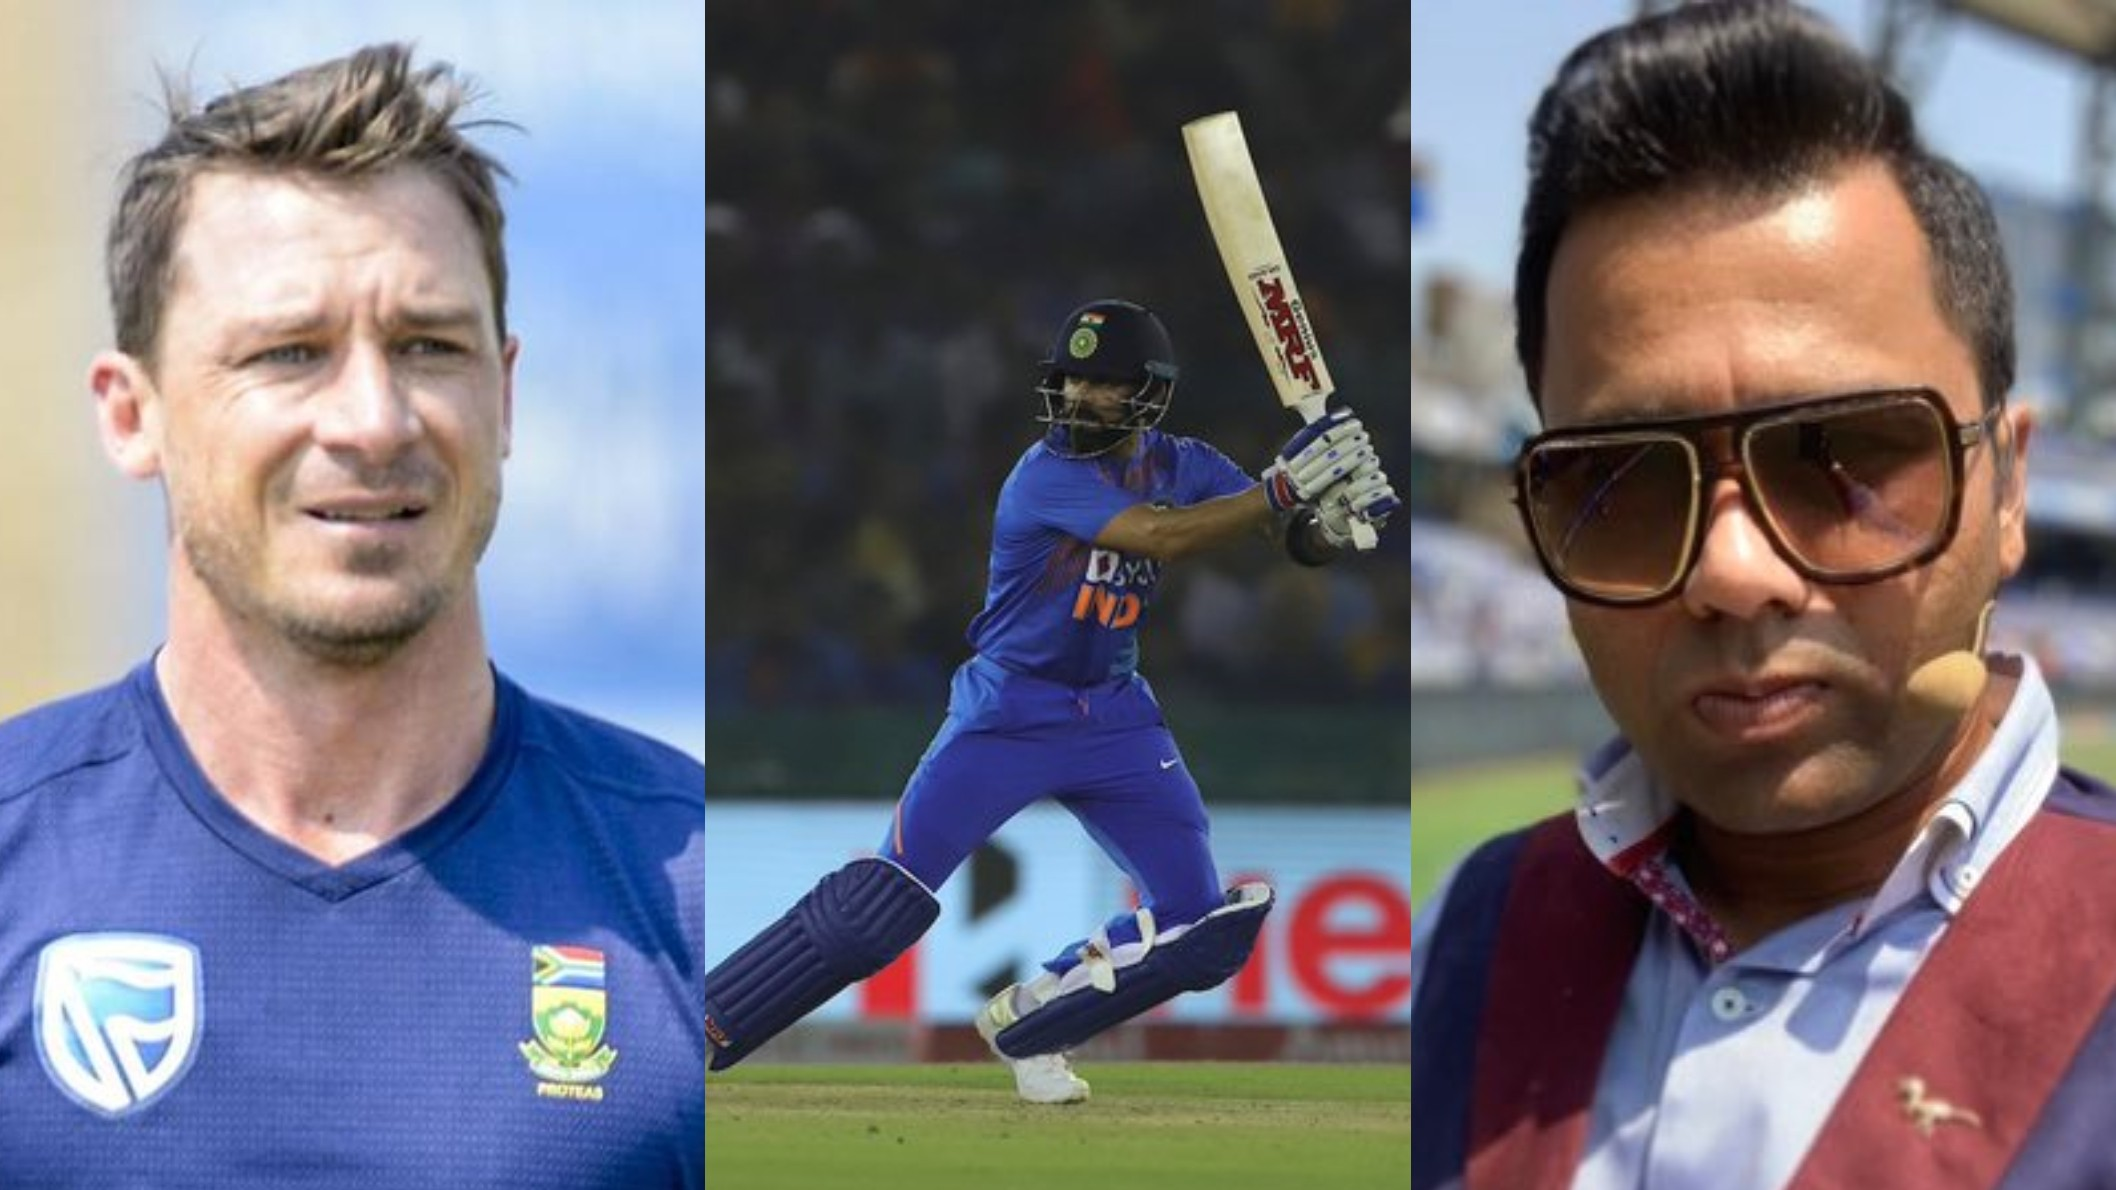 IND v SA 2019: 2nd T20I- Cricket fraternity applauds Virat Kohli's 72* as India defeats South Africa by 7 wickets